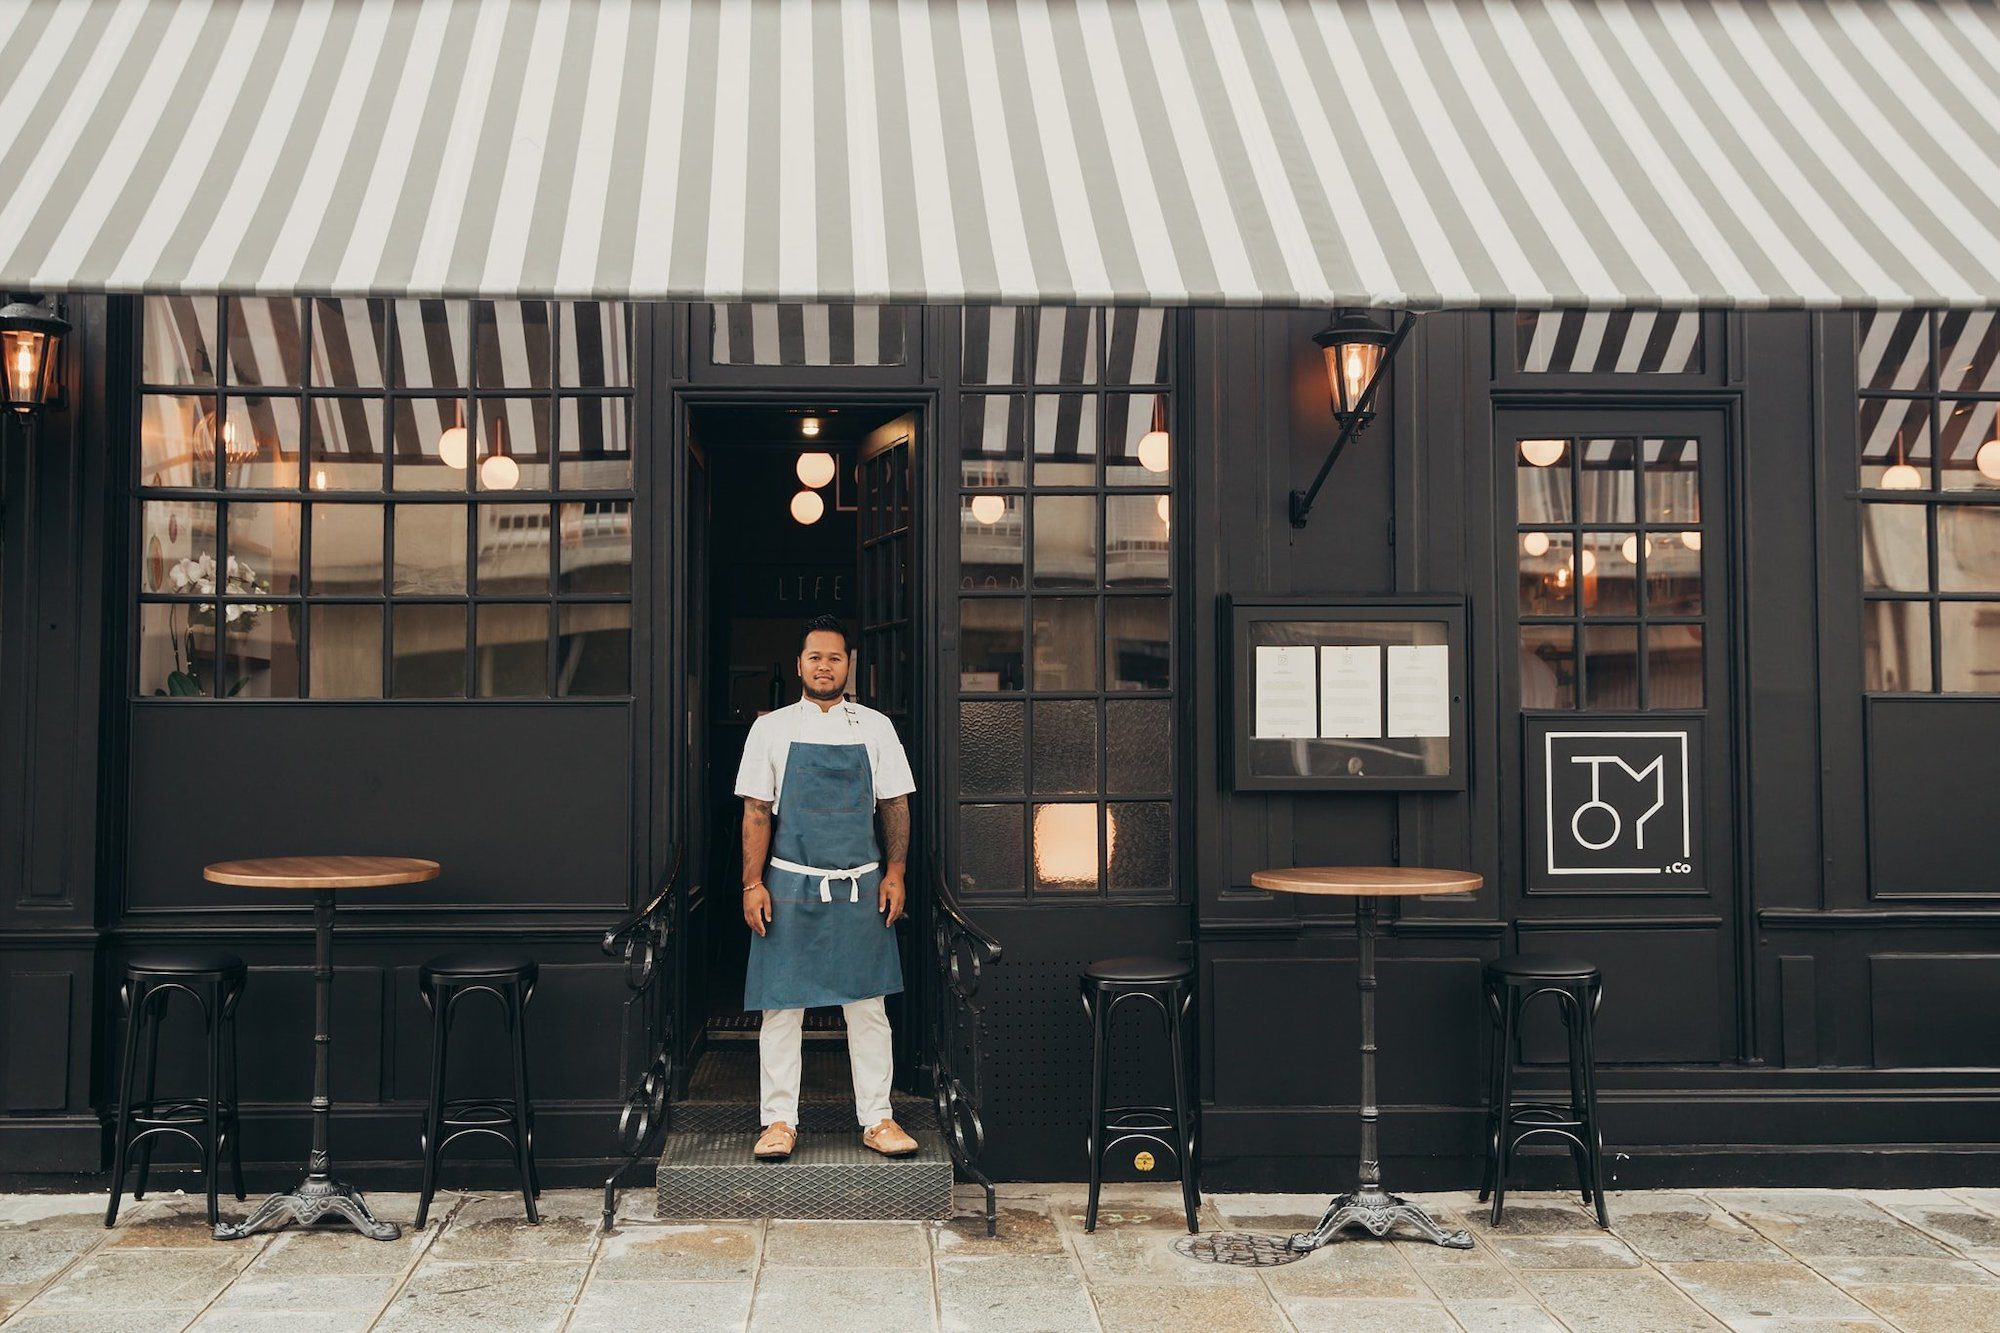 Tomy Gousset, the star chef standing in the doorway of his restaurant Tomy + Co in Paris near the Eiffel Tower.